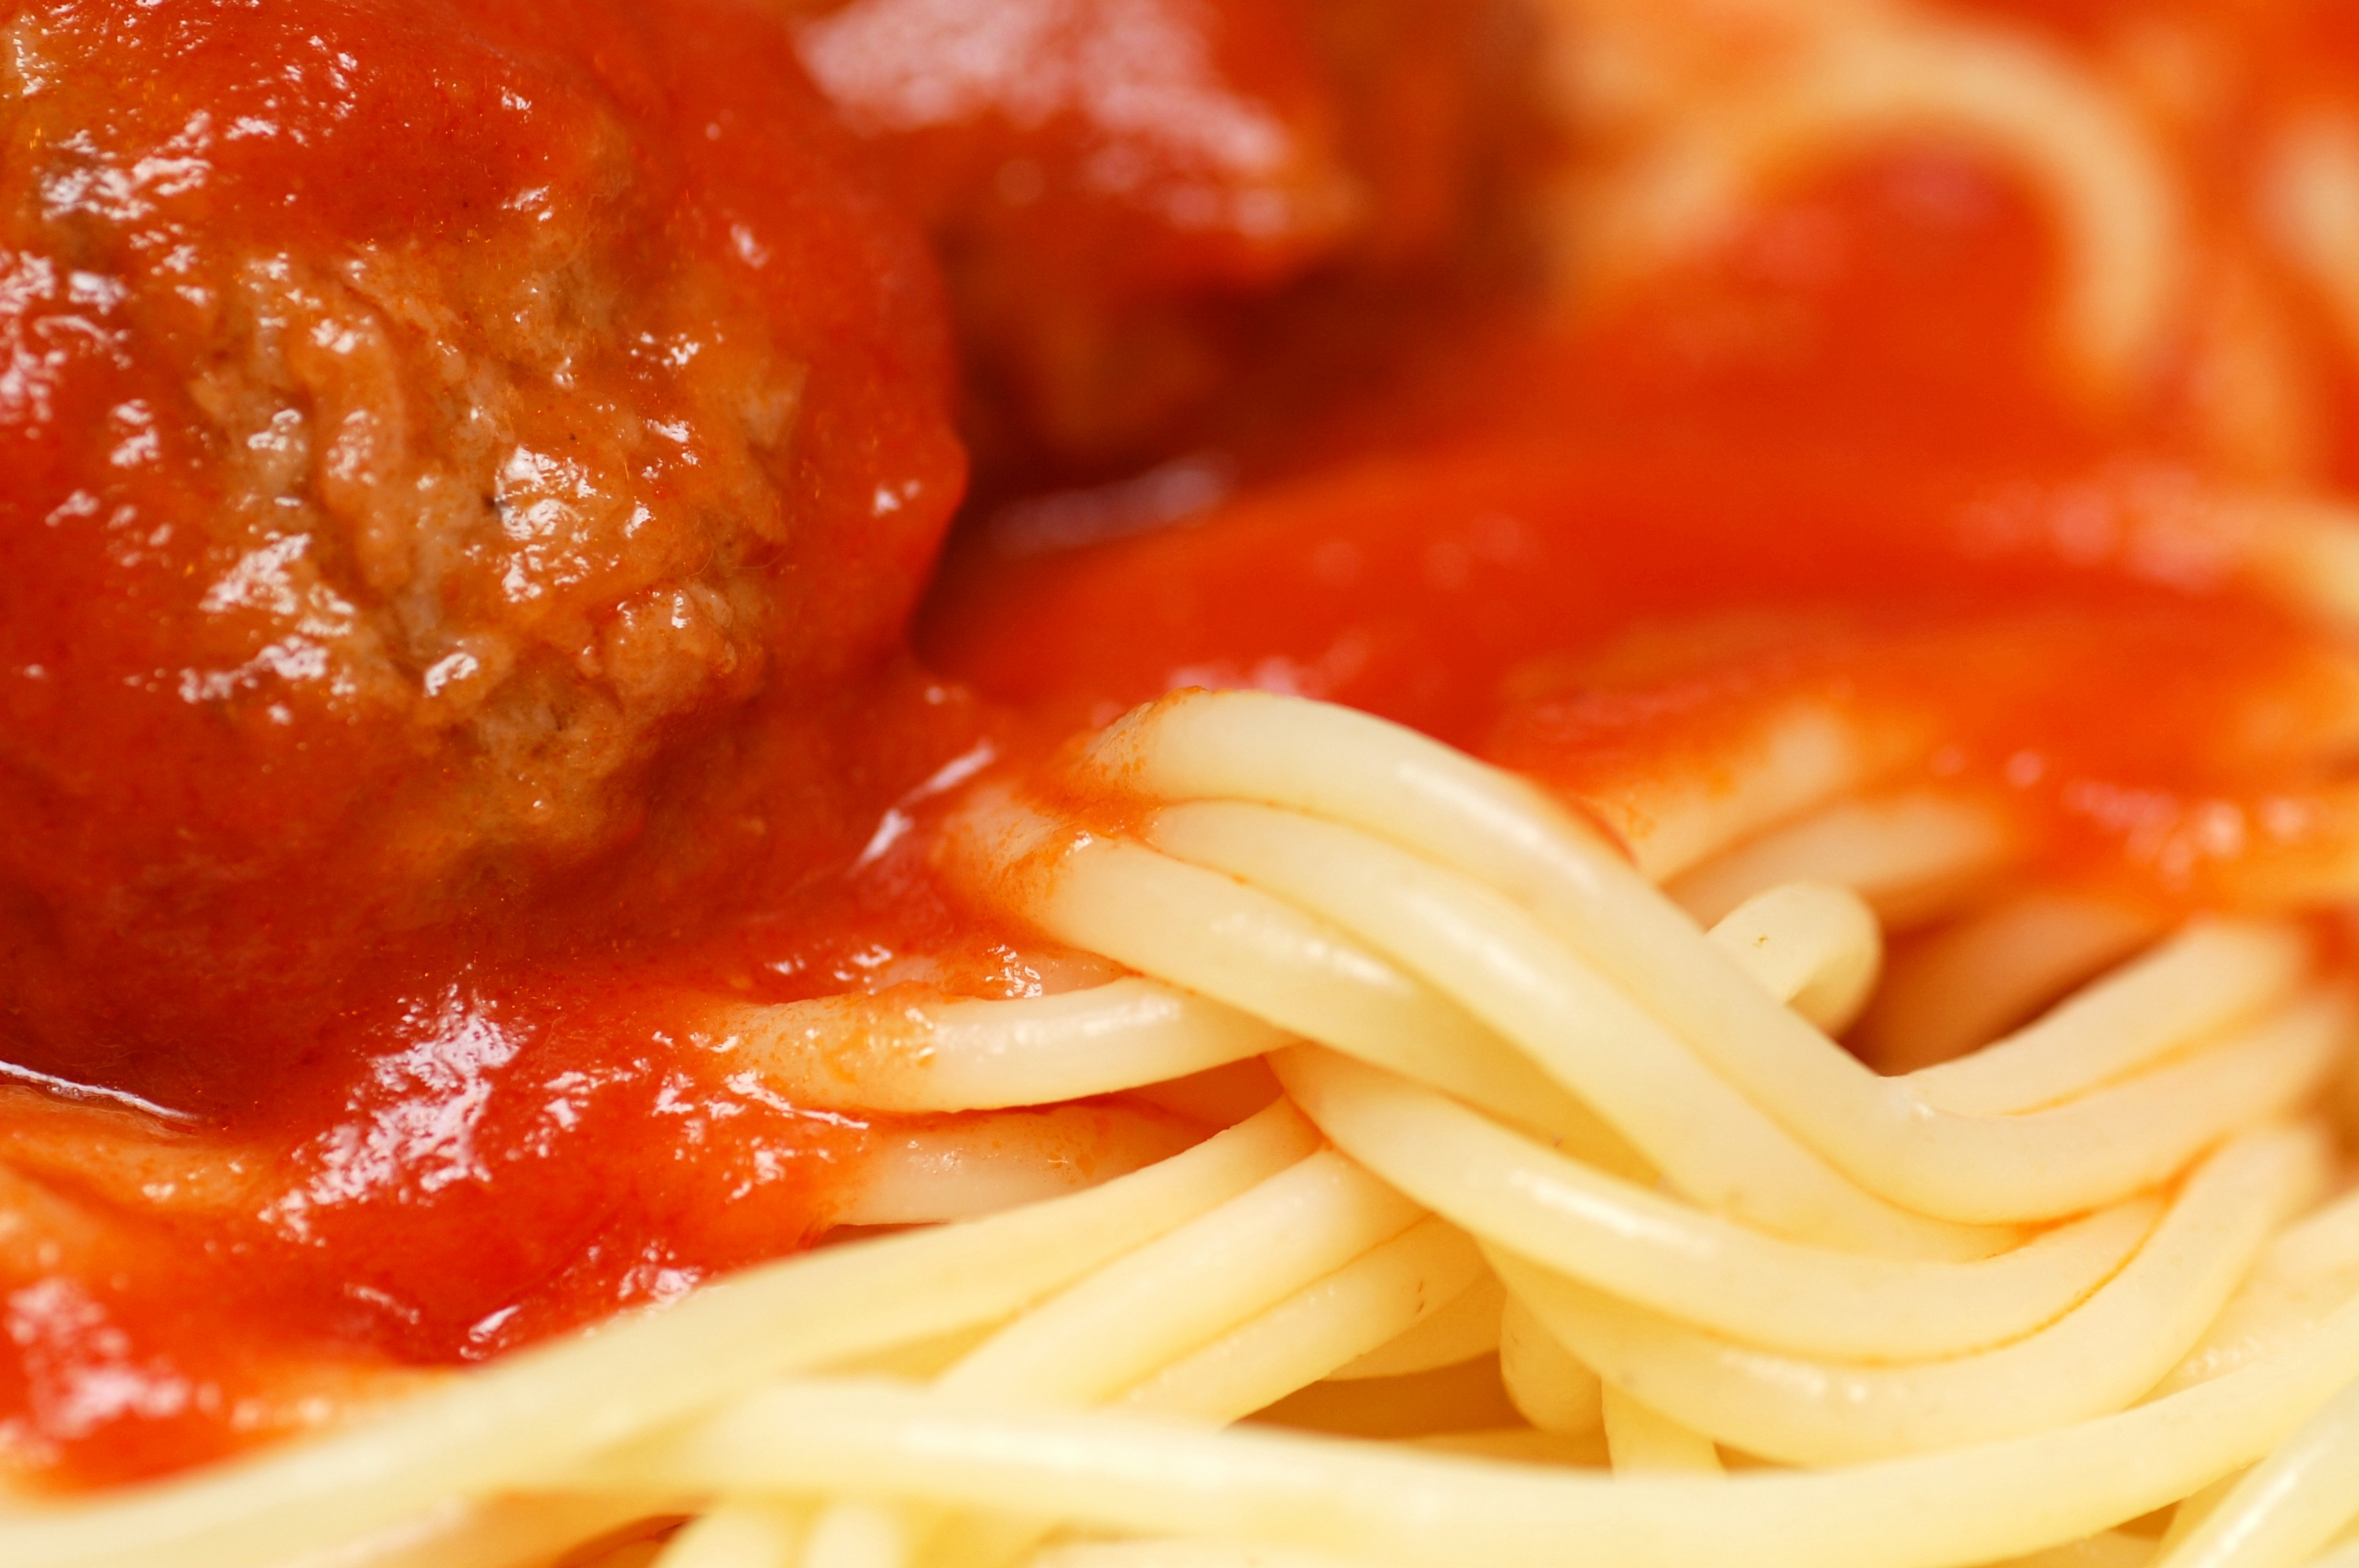 English: Spaghetti and Meatballs